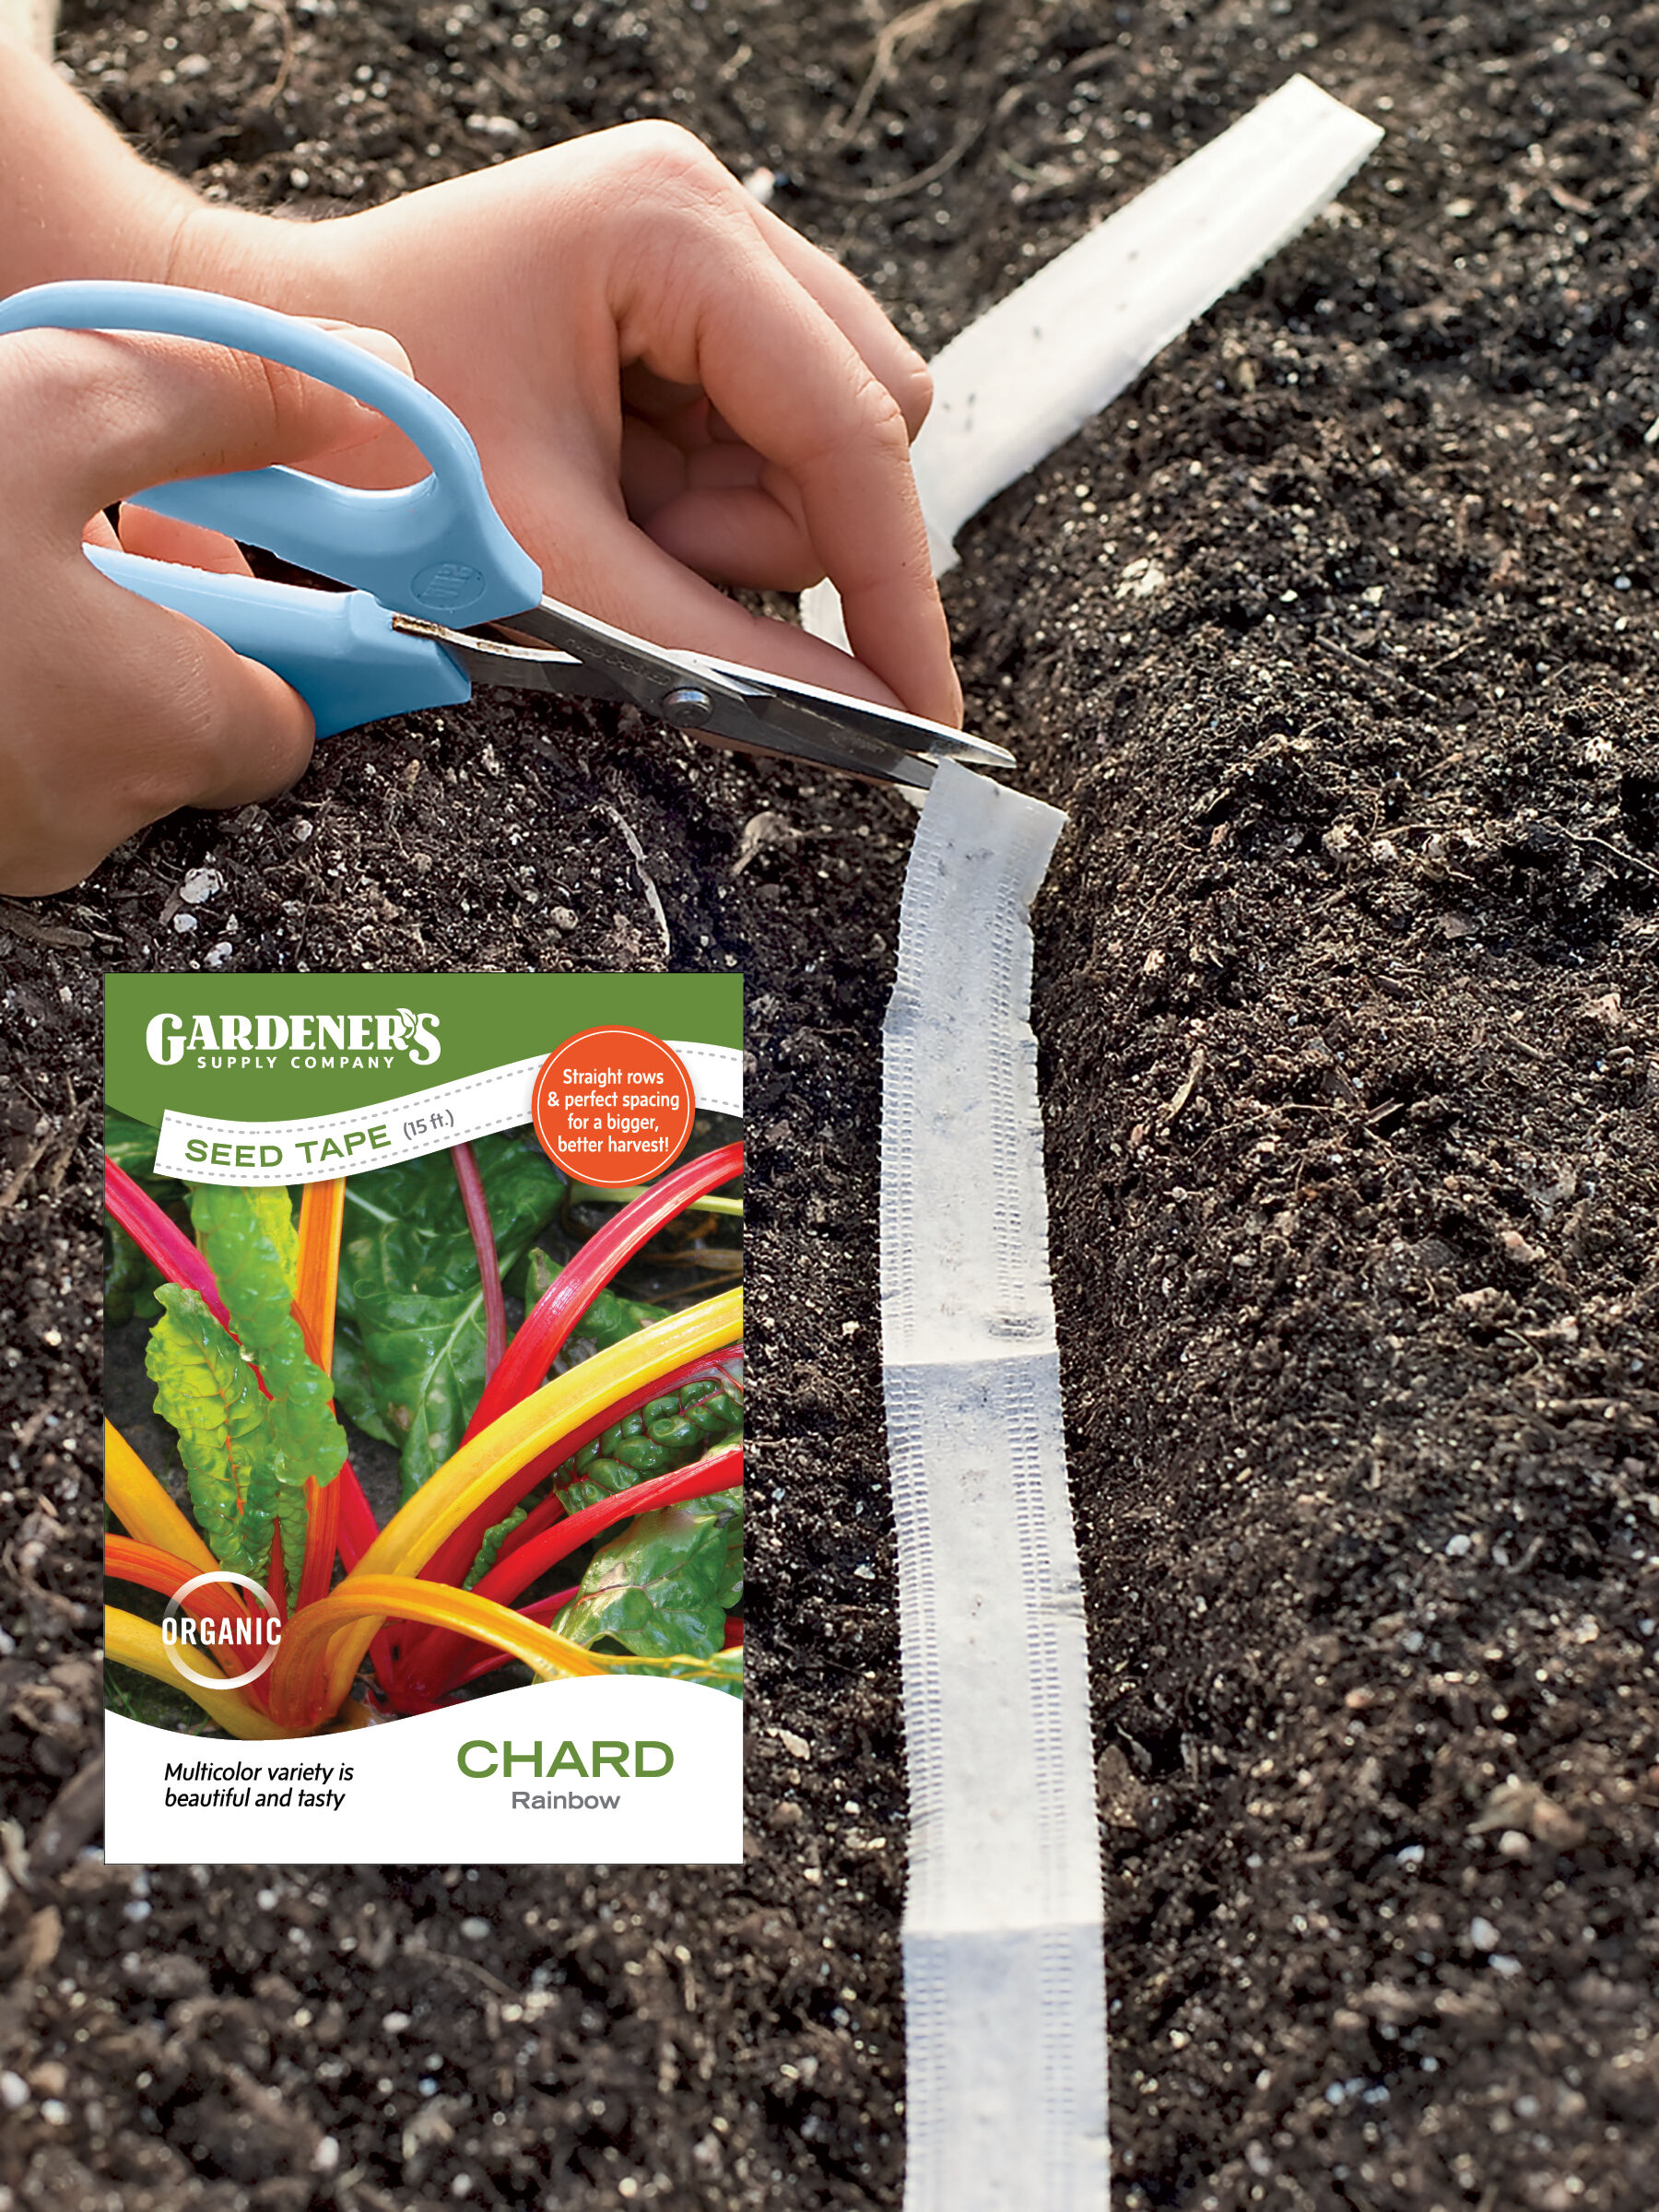 Rainbow Swiss Chard (Mixed Colors) - 15 Foot Seed Tape, Chard Seed, Swiss Chard Seed, Spinach Beet Seed, Bright Lights Chard, Garden Seeds, Vegetable Seeds